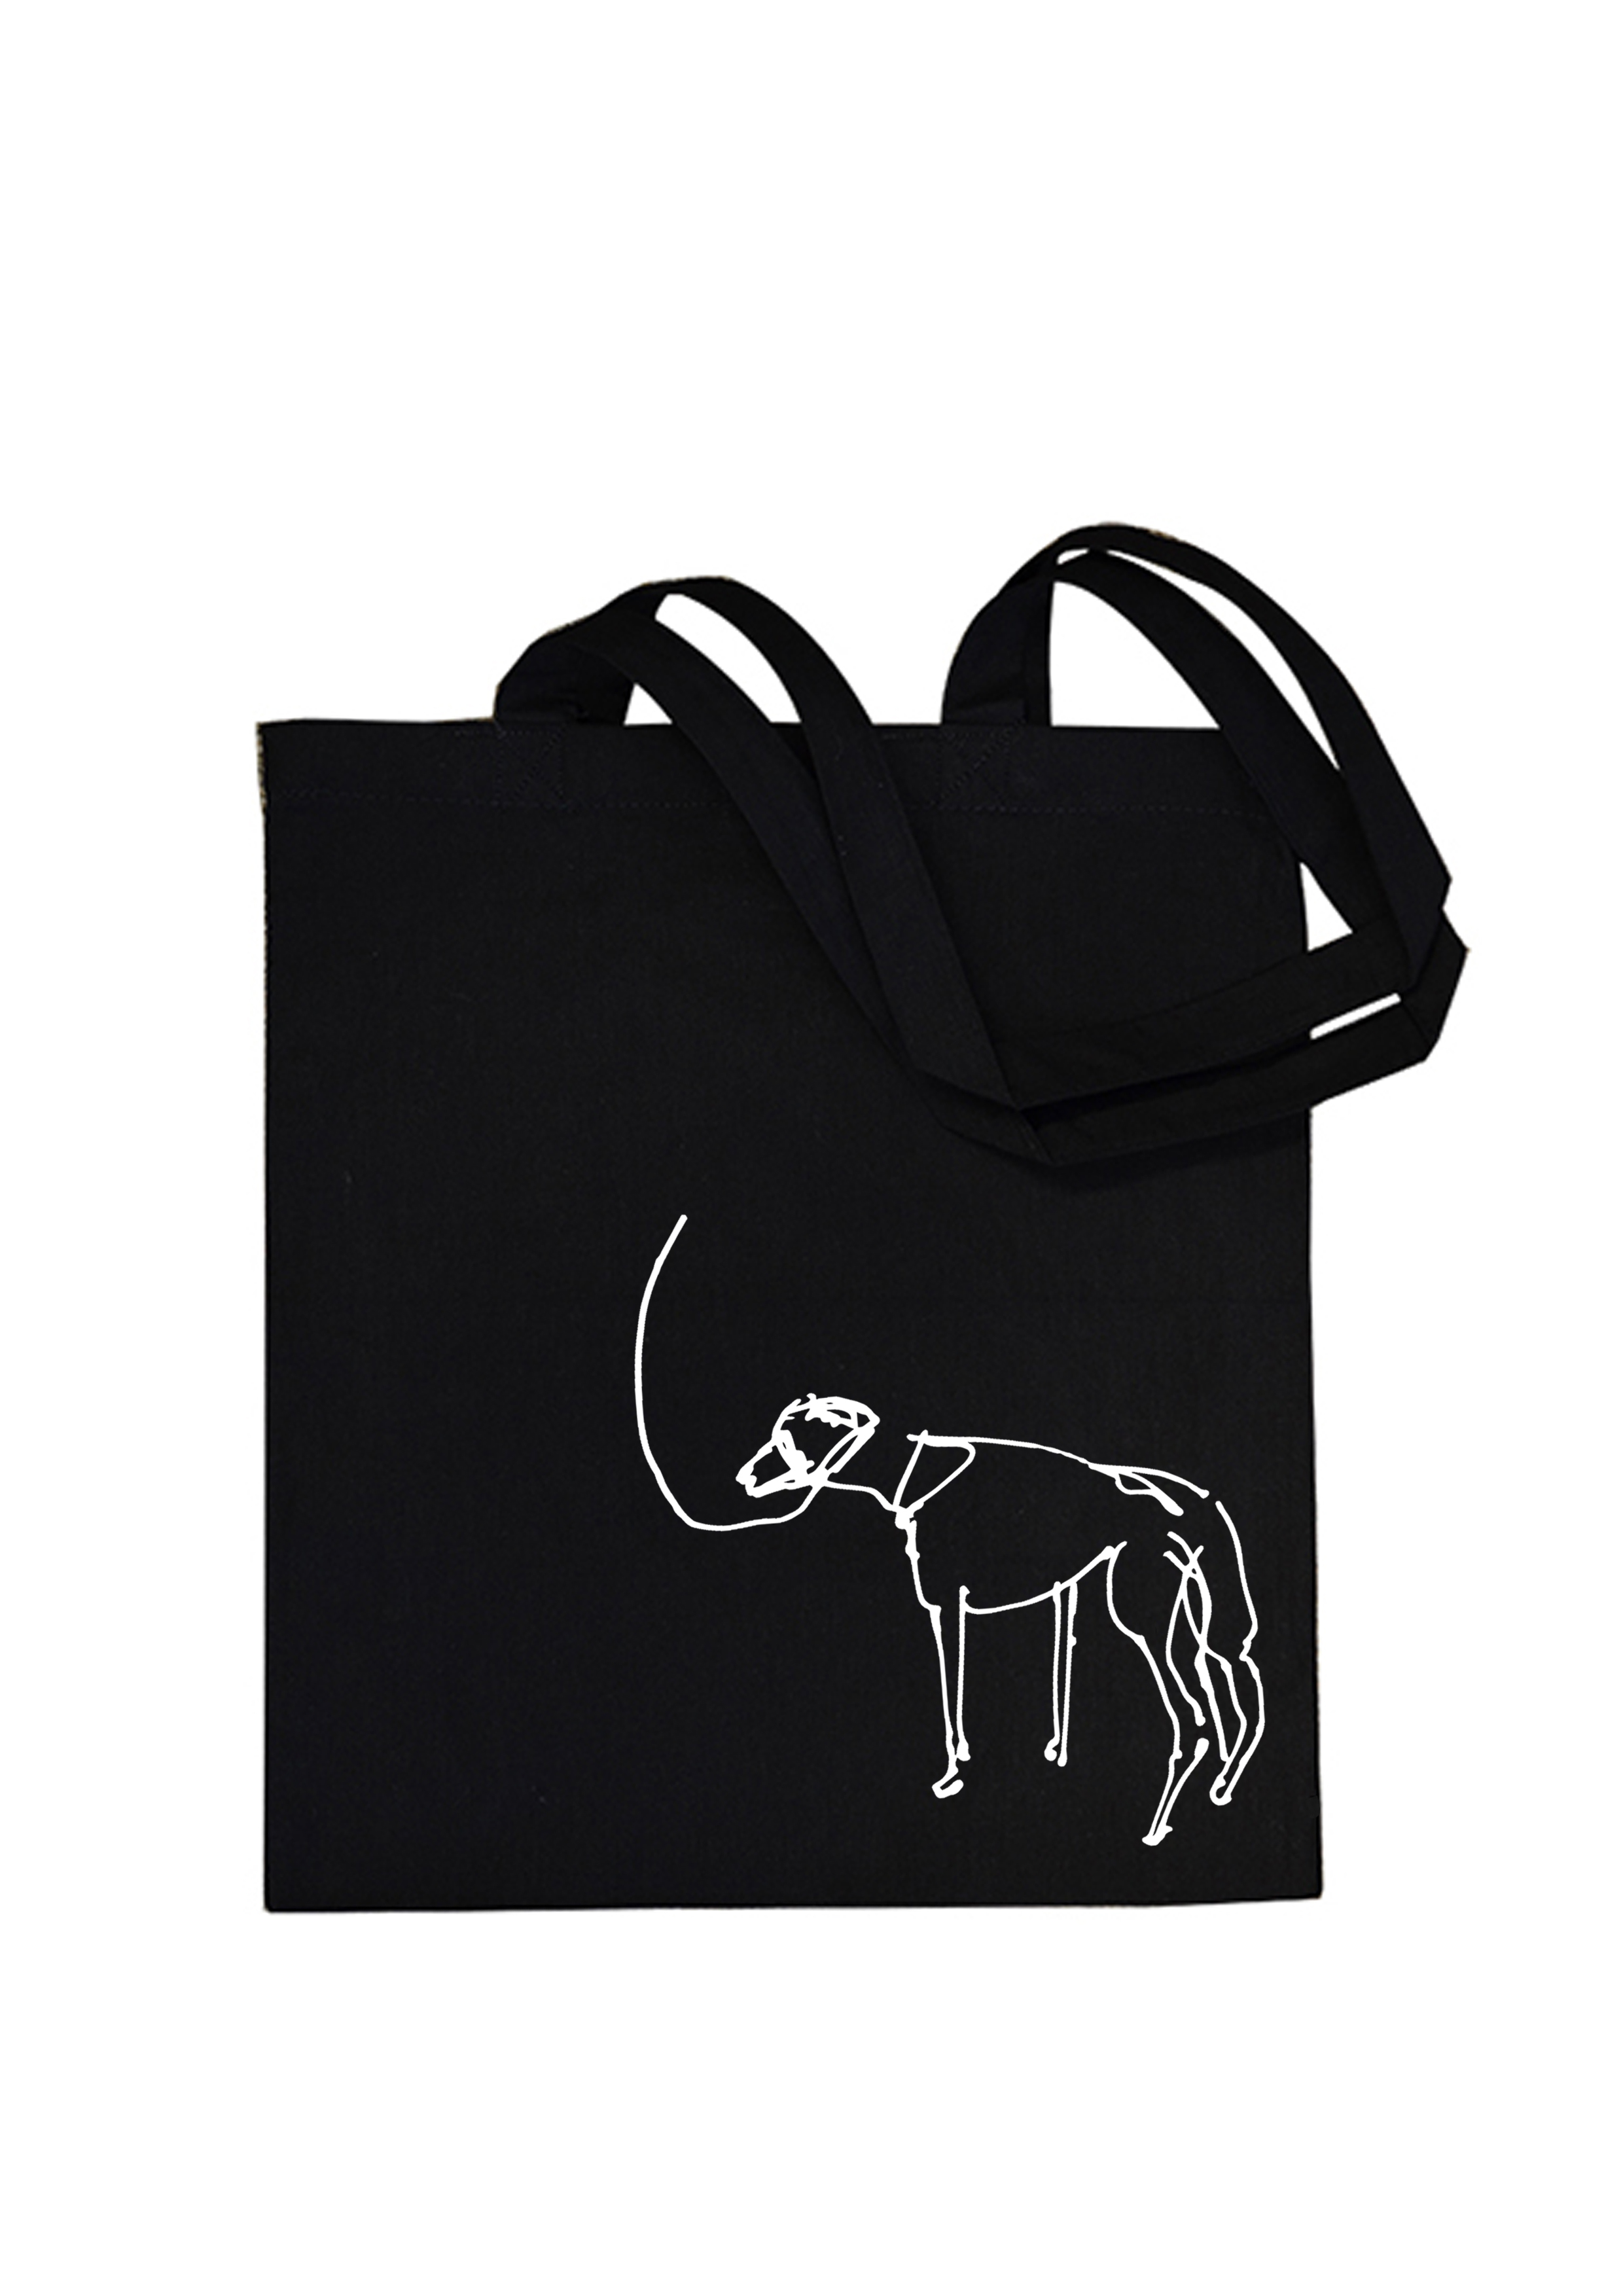 Black tote with dog.jpg